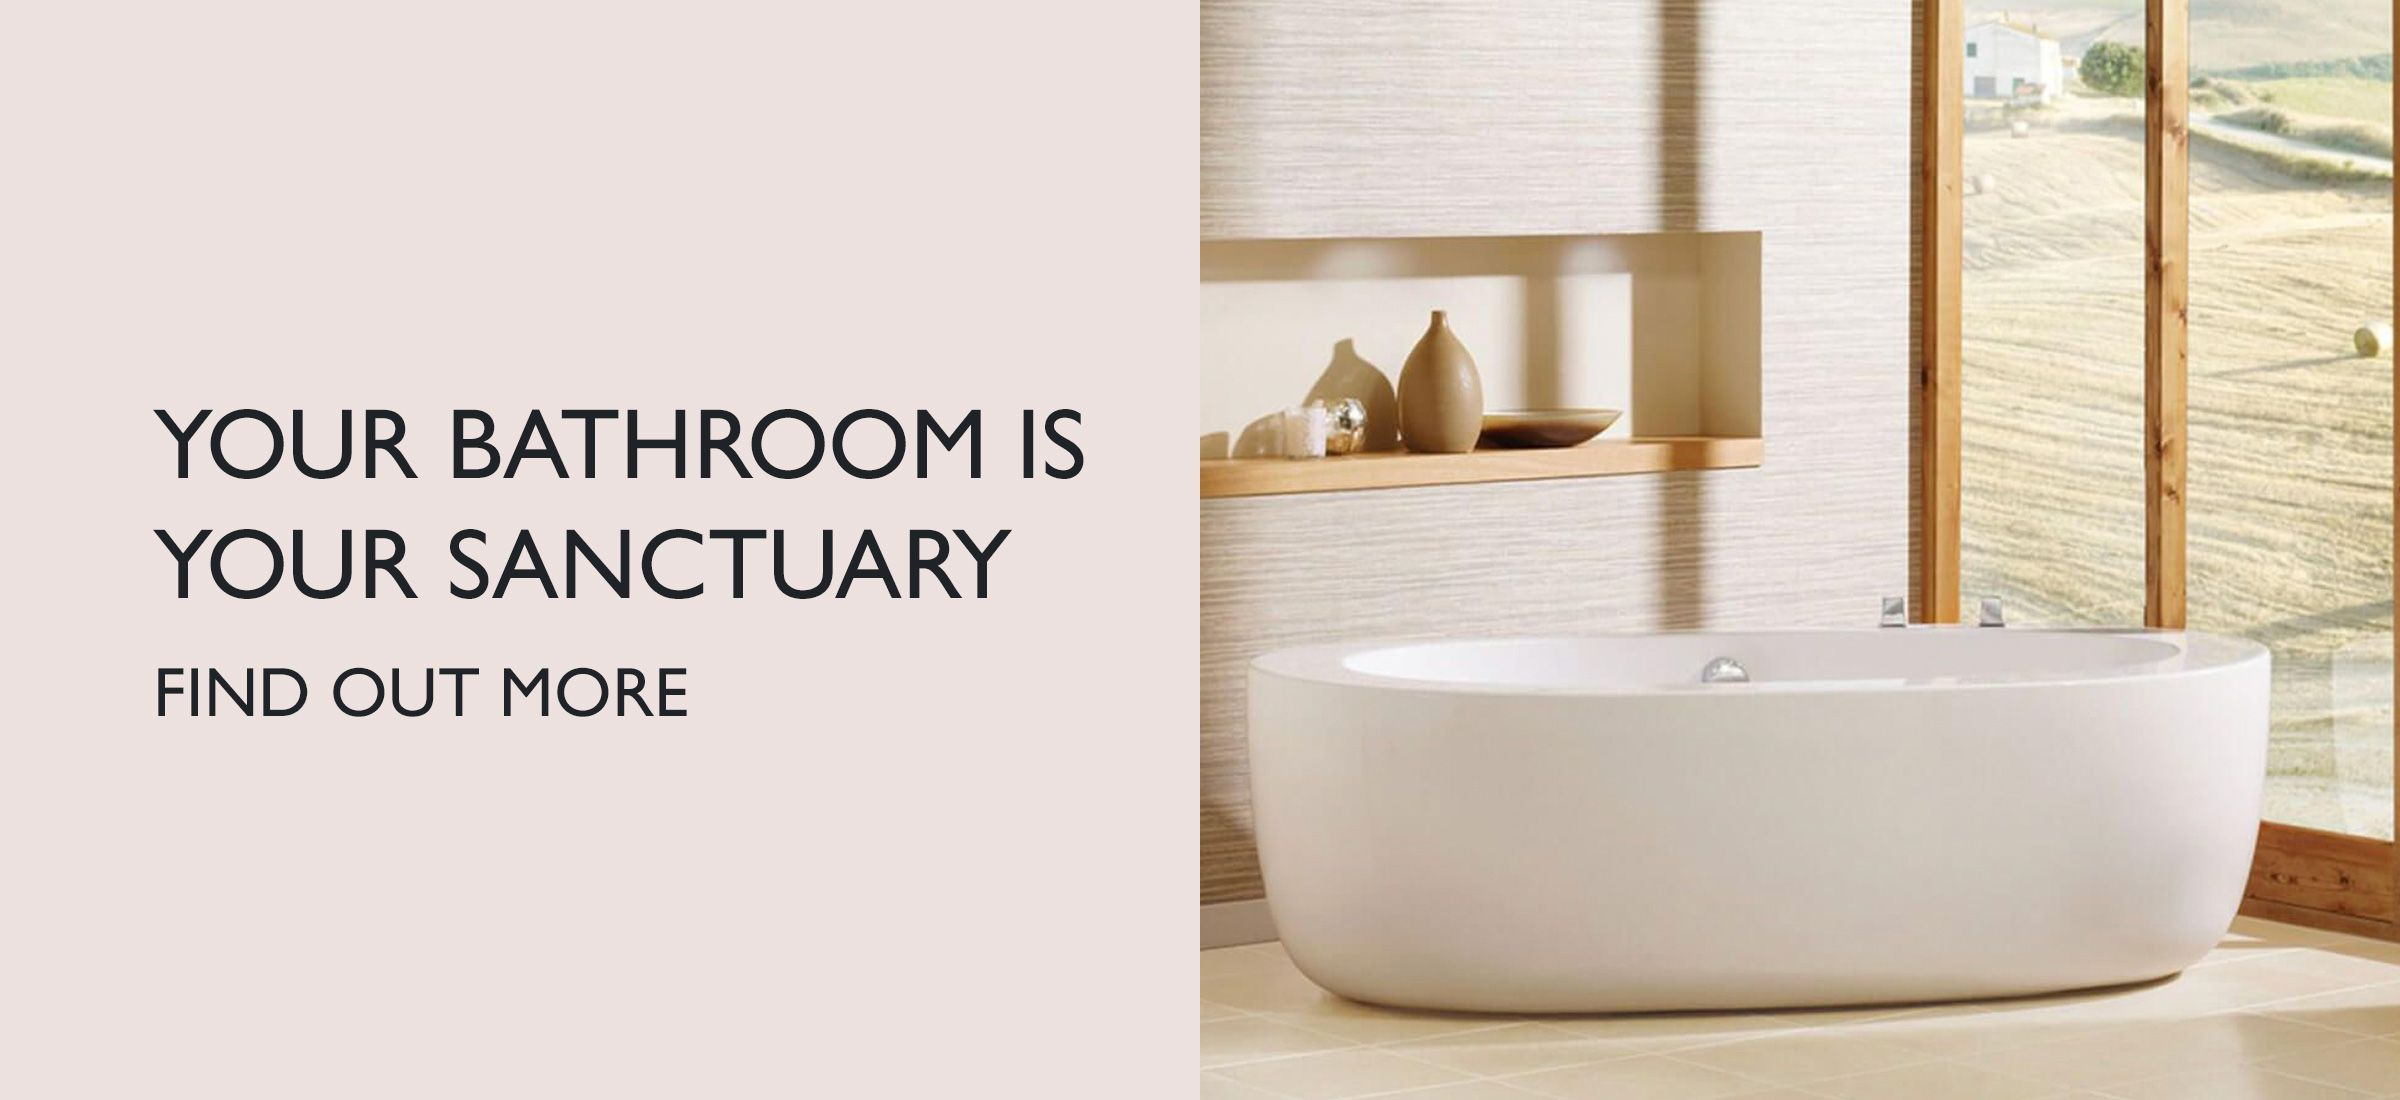 Your bathroom is your sanctuary